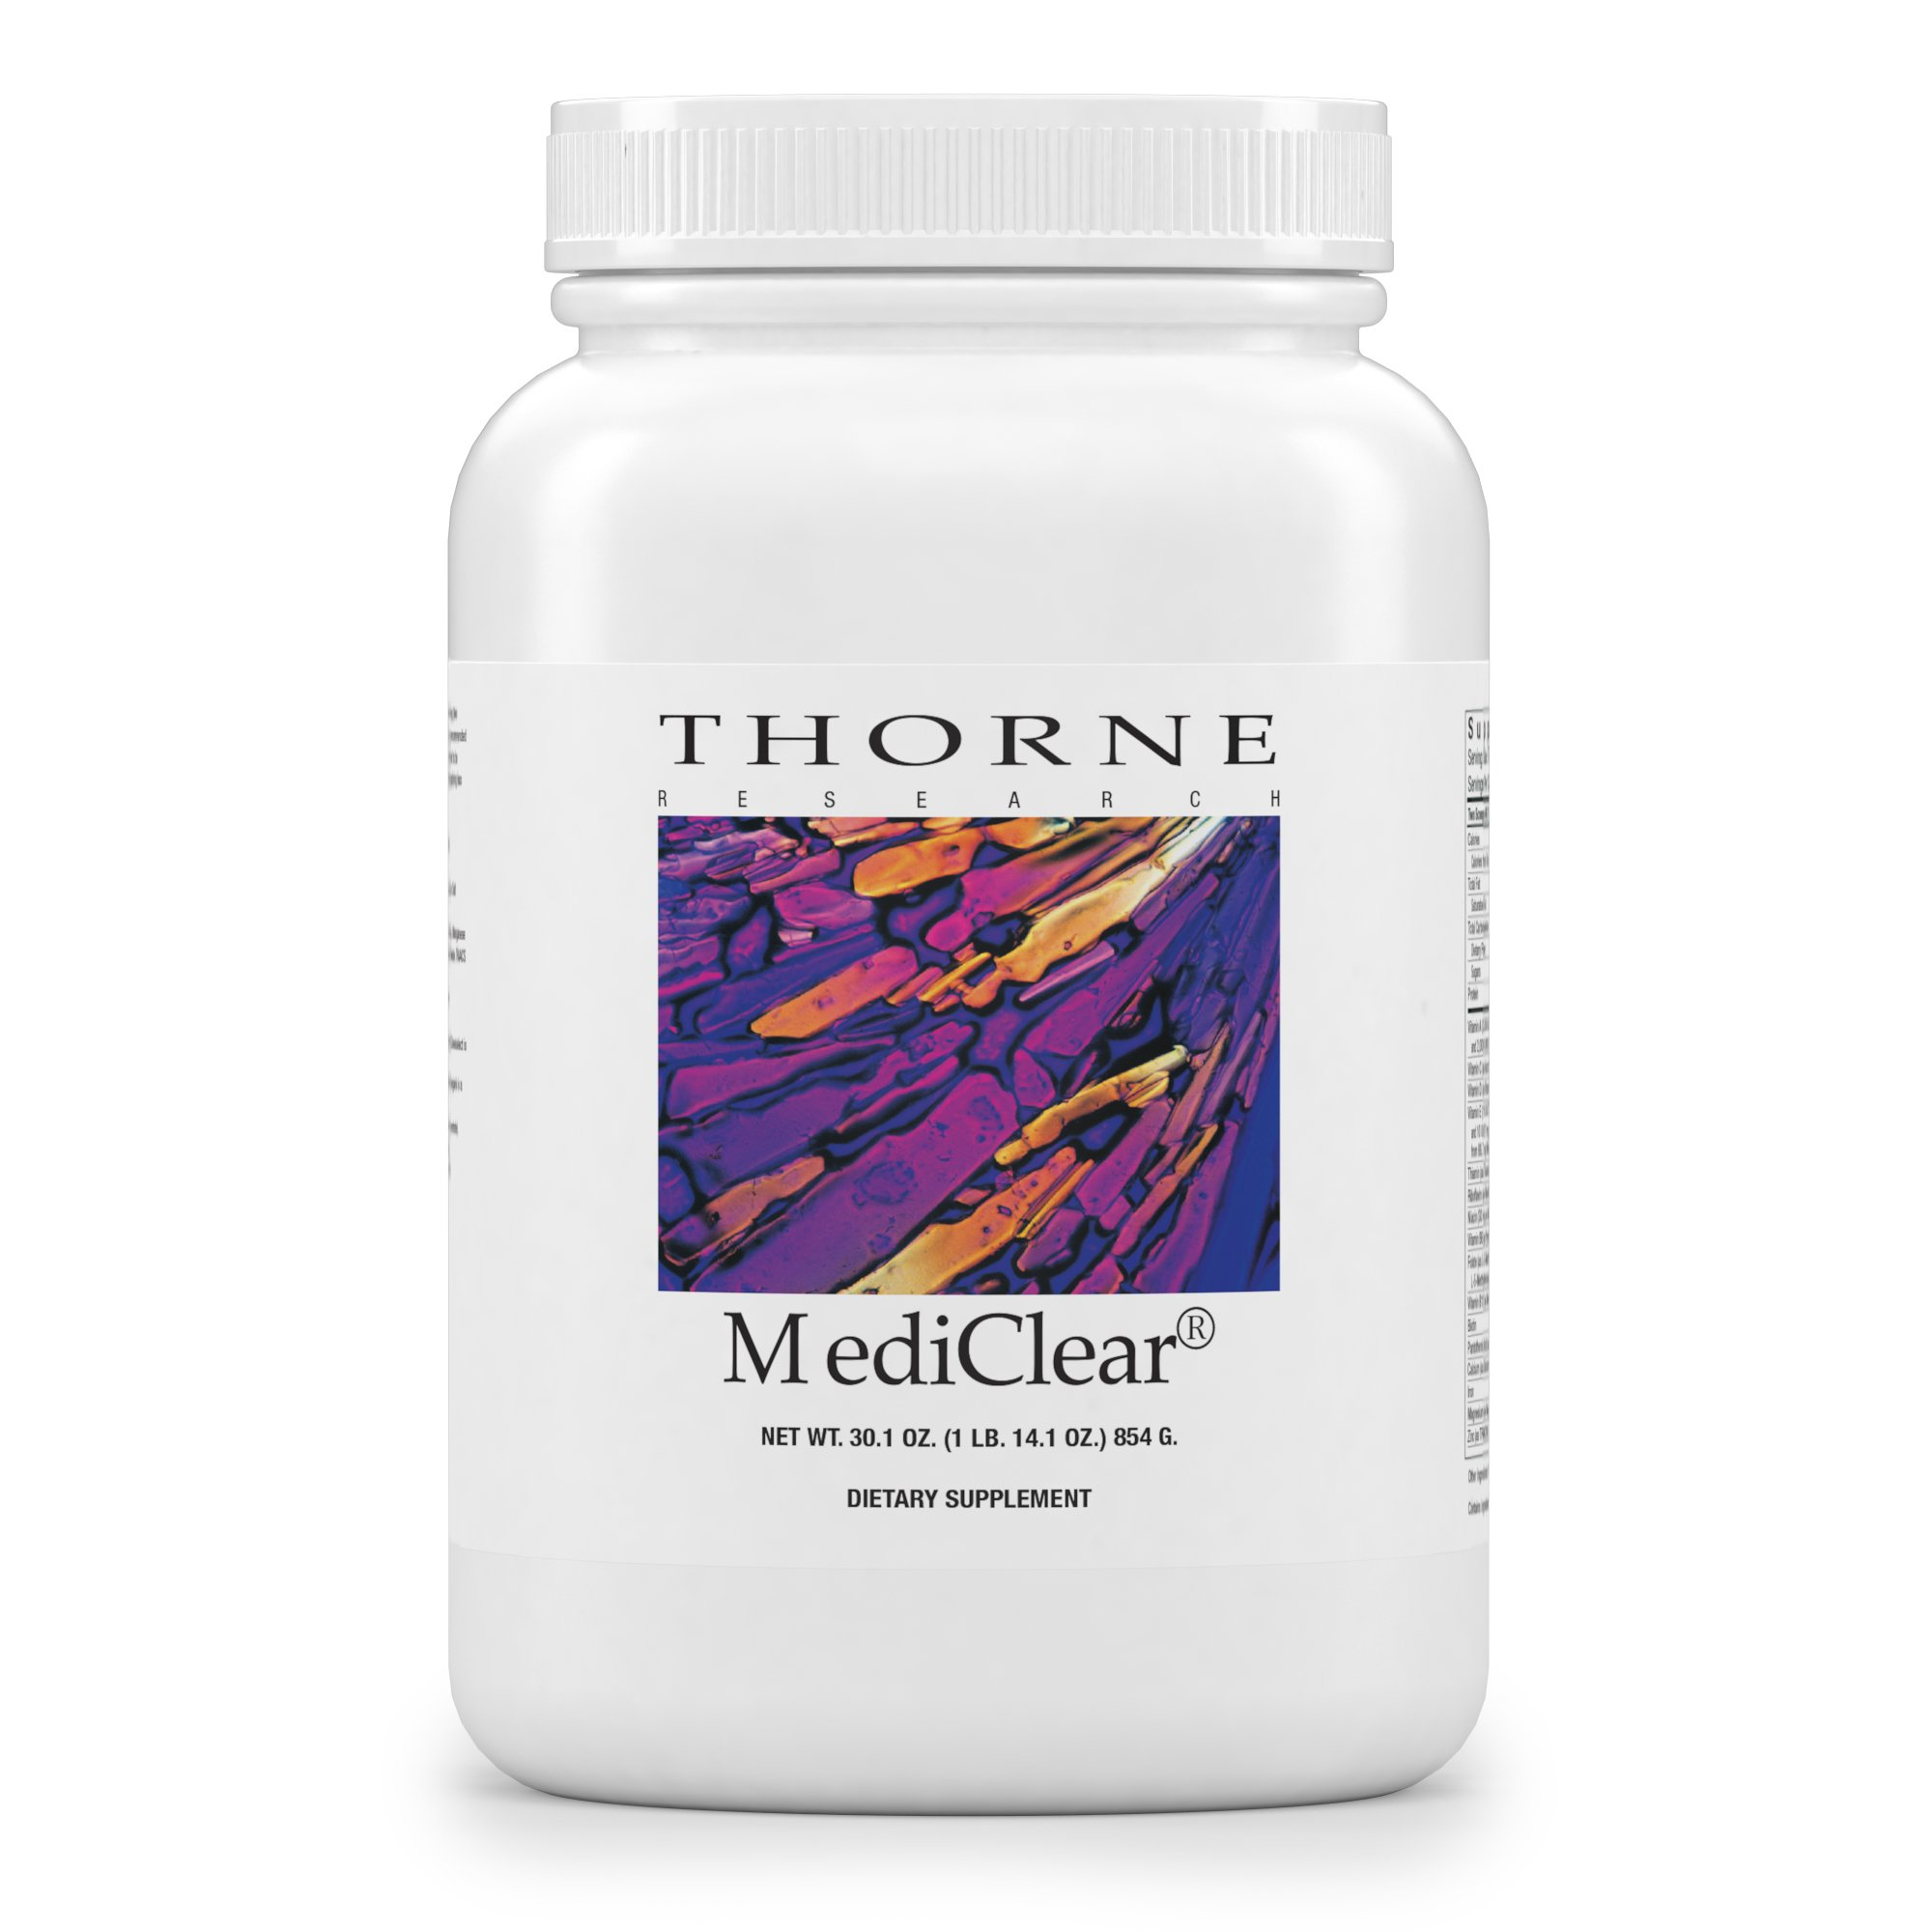 Thorne Research - MediClear - Detox, Cleanse, and Weight Loss Support - Rice and Pea Protein-Based Drink Powder with a Complete Multivitamin-Mineral Profile - 30.1 oz.